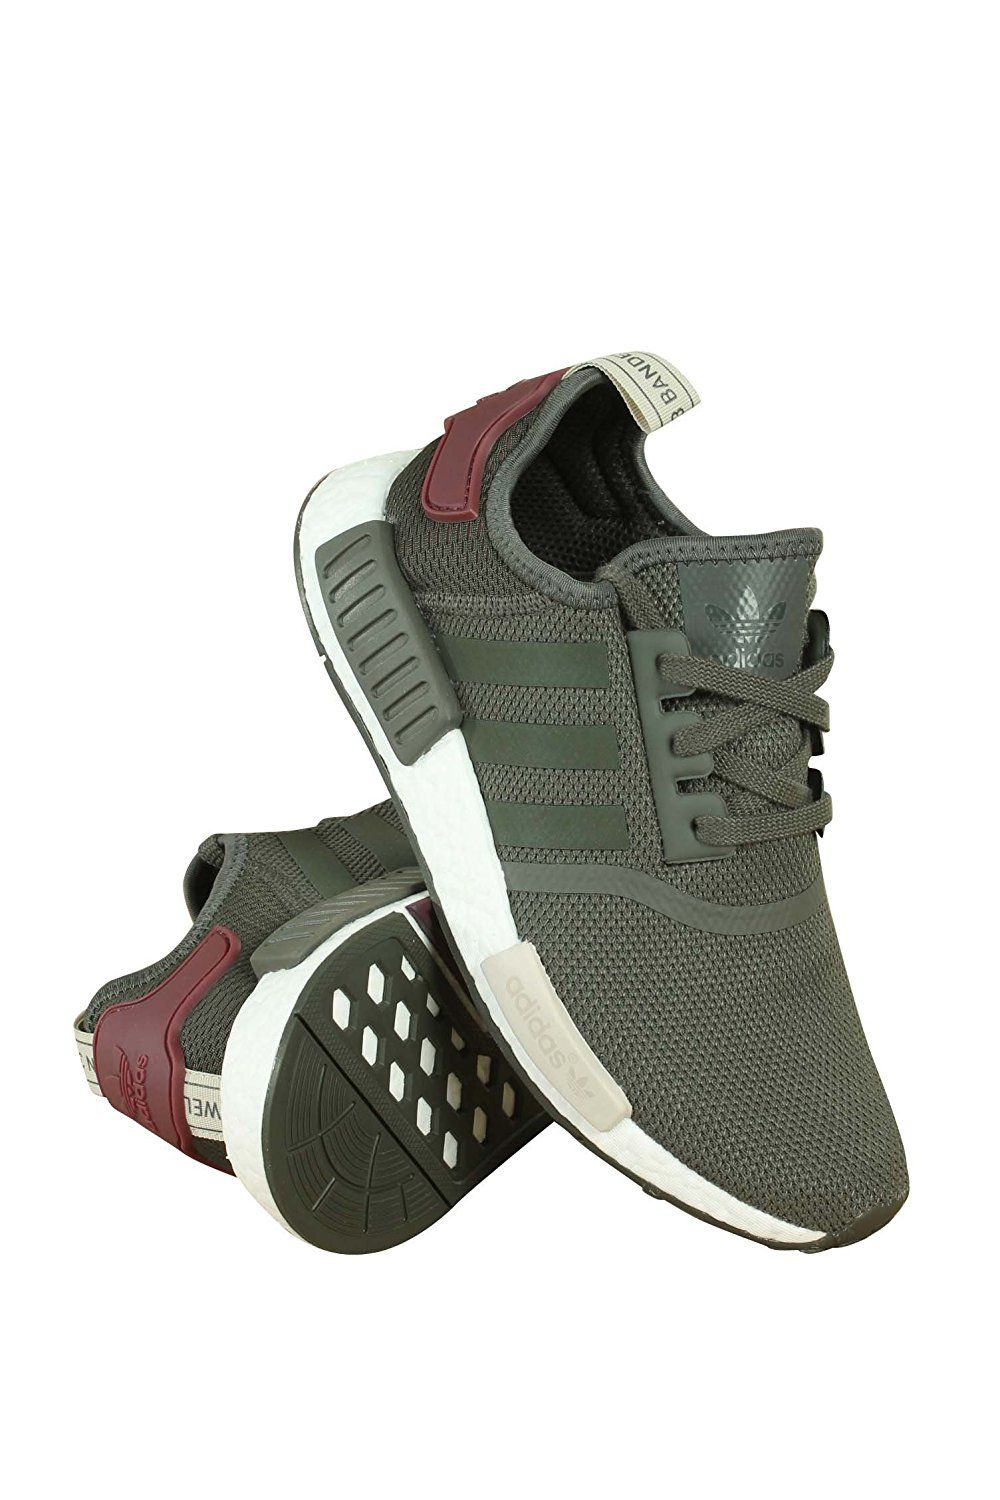 a6b28b3eb1fb4 Amazon.com | NMD R1 W Ladies in Utility Green/Maroon by Adidas, 8 ...